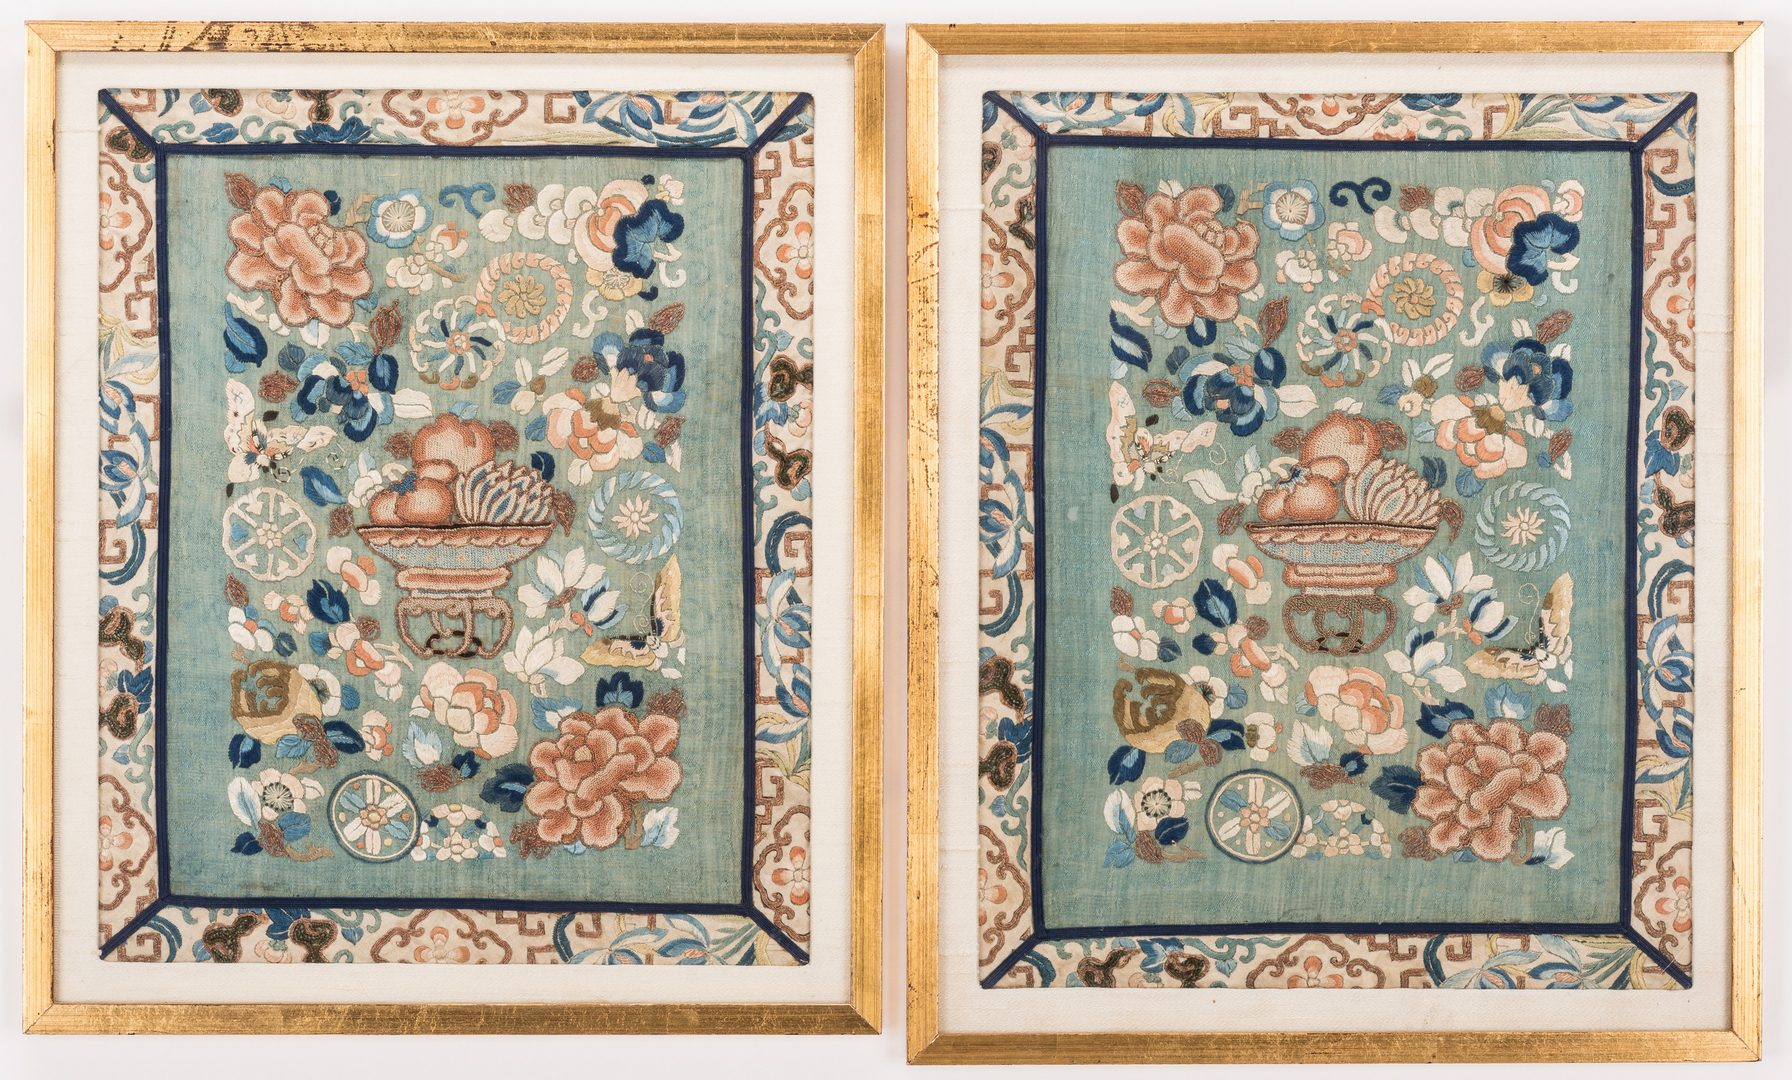 Lot 768: 2 Chinese Forbidden Stitch Embroideries